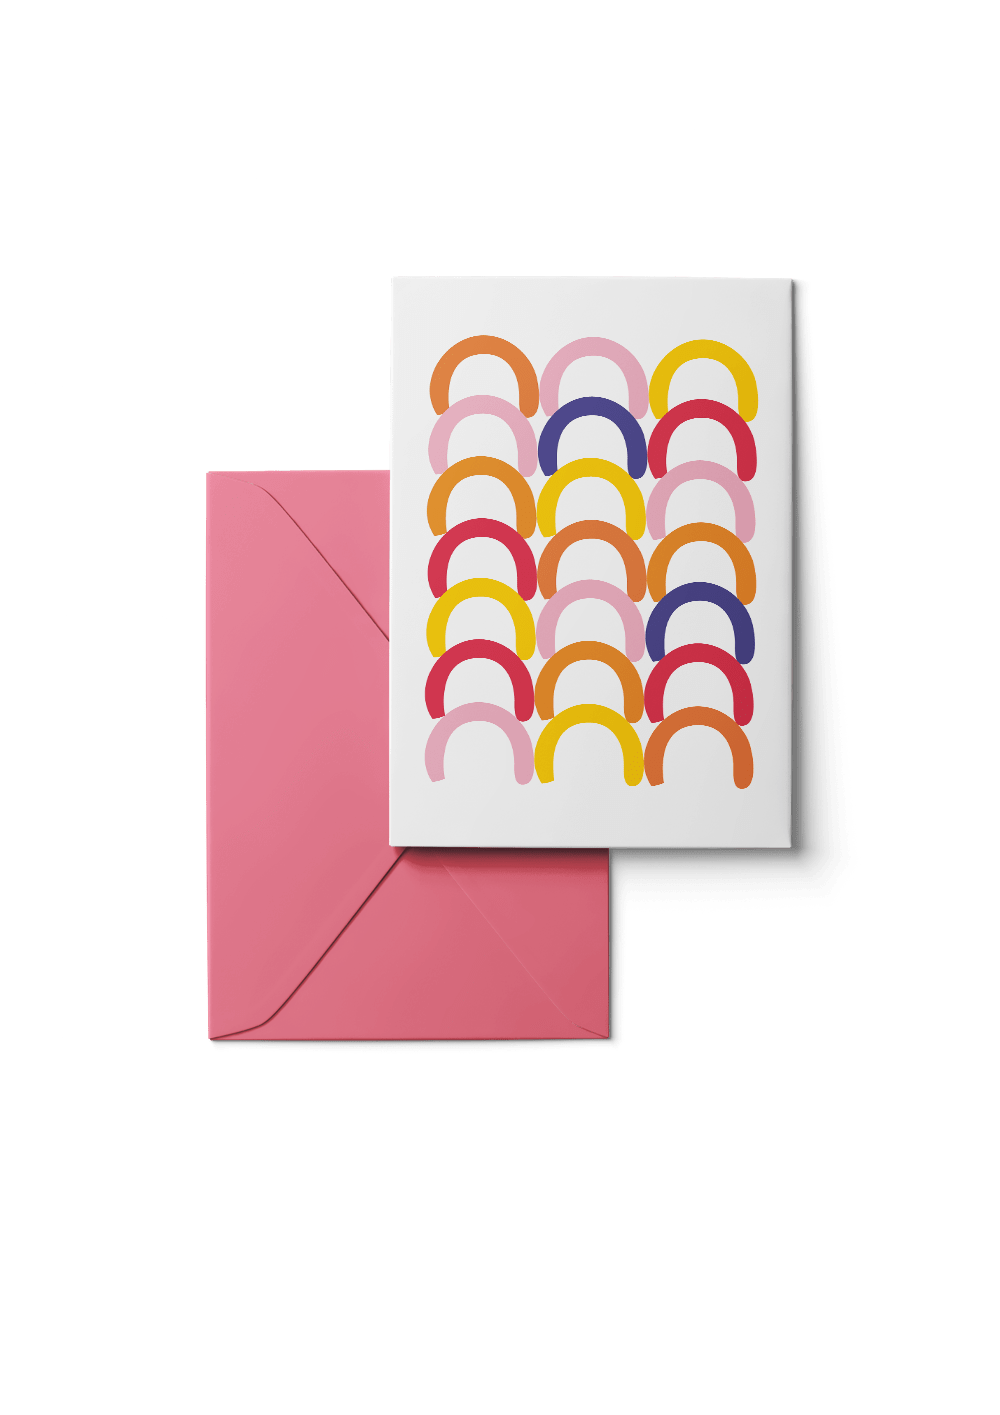 Huddle, Ochre, Grußkarte, 6 Karten Set by Karten Design Fabrik. Supplier of designer Greeting Cards, Gift Wrap, Christmas Cards & Invitations to leading design stores including Connox, Modulor, Magazin & Manufactum.